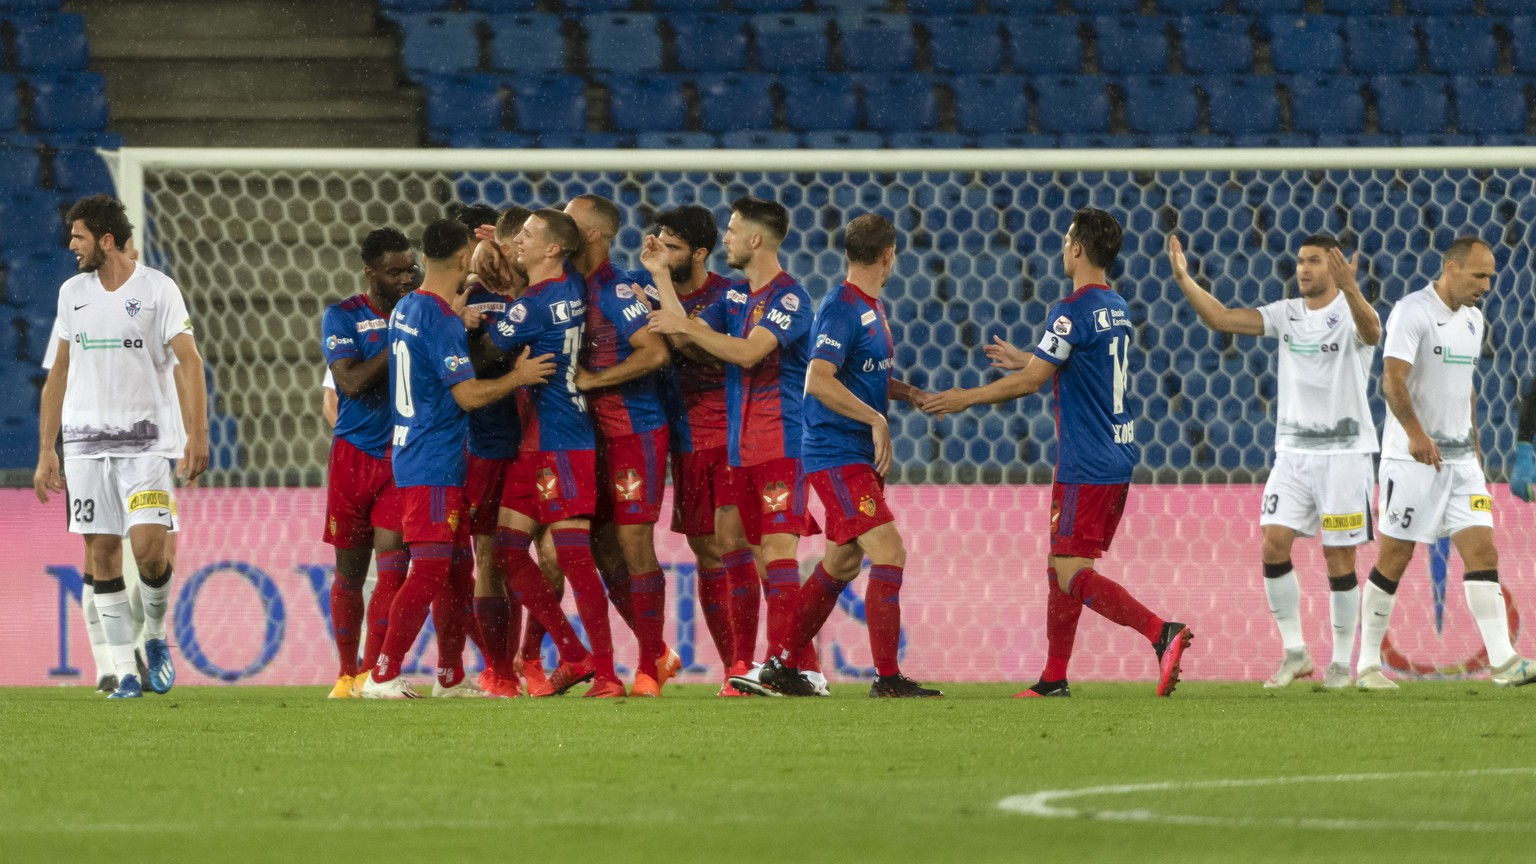 epa08694498 FC Basel's players celebrate during the UEFA Europa League third qualifying round soccer match between FC Basel 1893 and Anorthosis Famagusta FC at the St. Jakob-Park stadium in Basel, Switzerland, 24 September 2020.  EPA/GEORGIOS KEFALAS